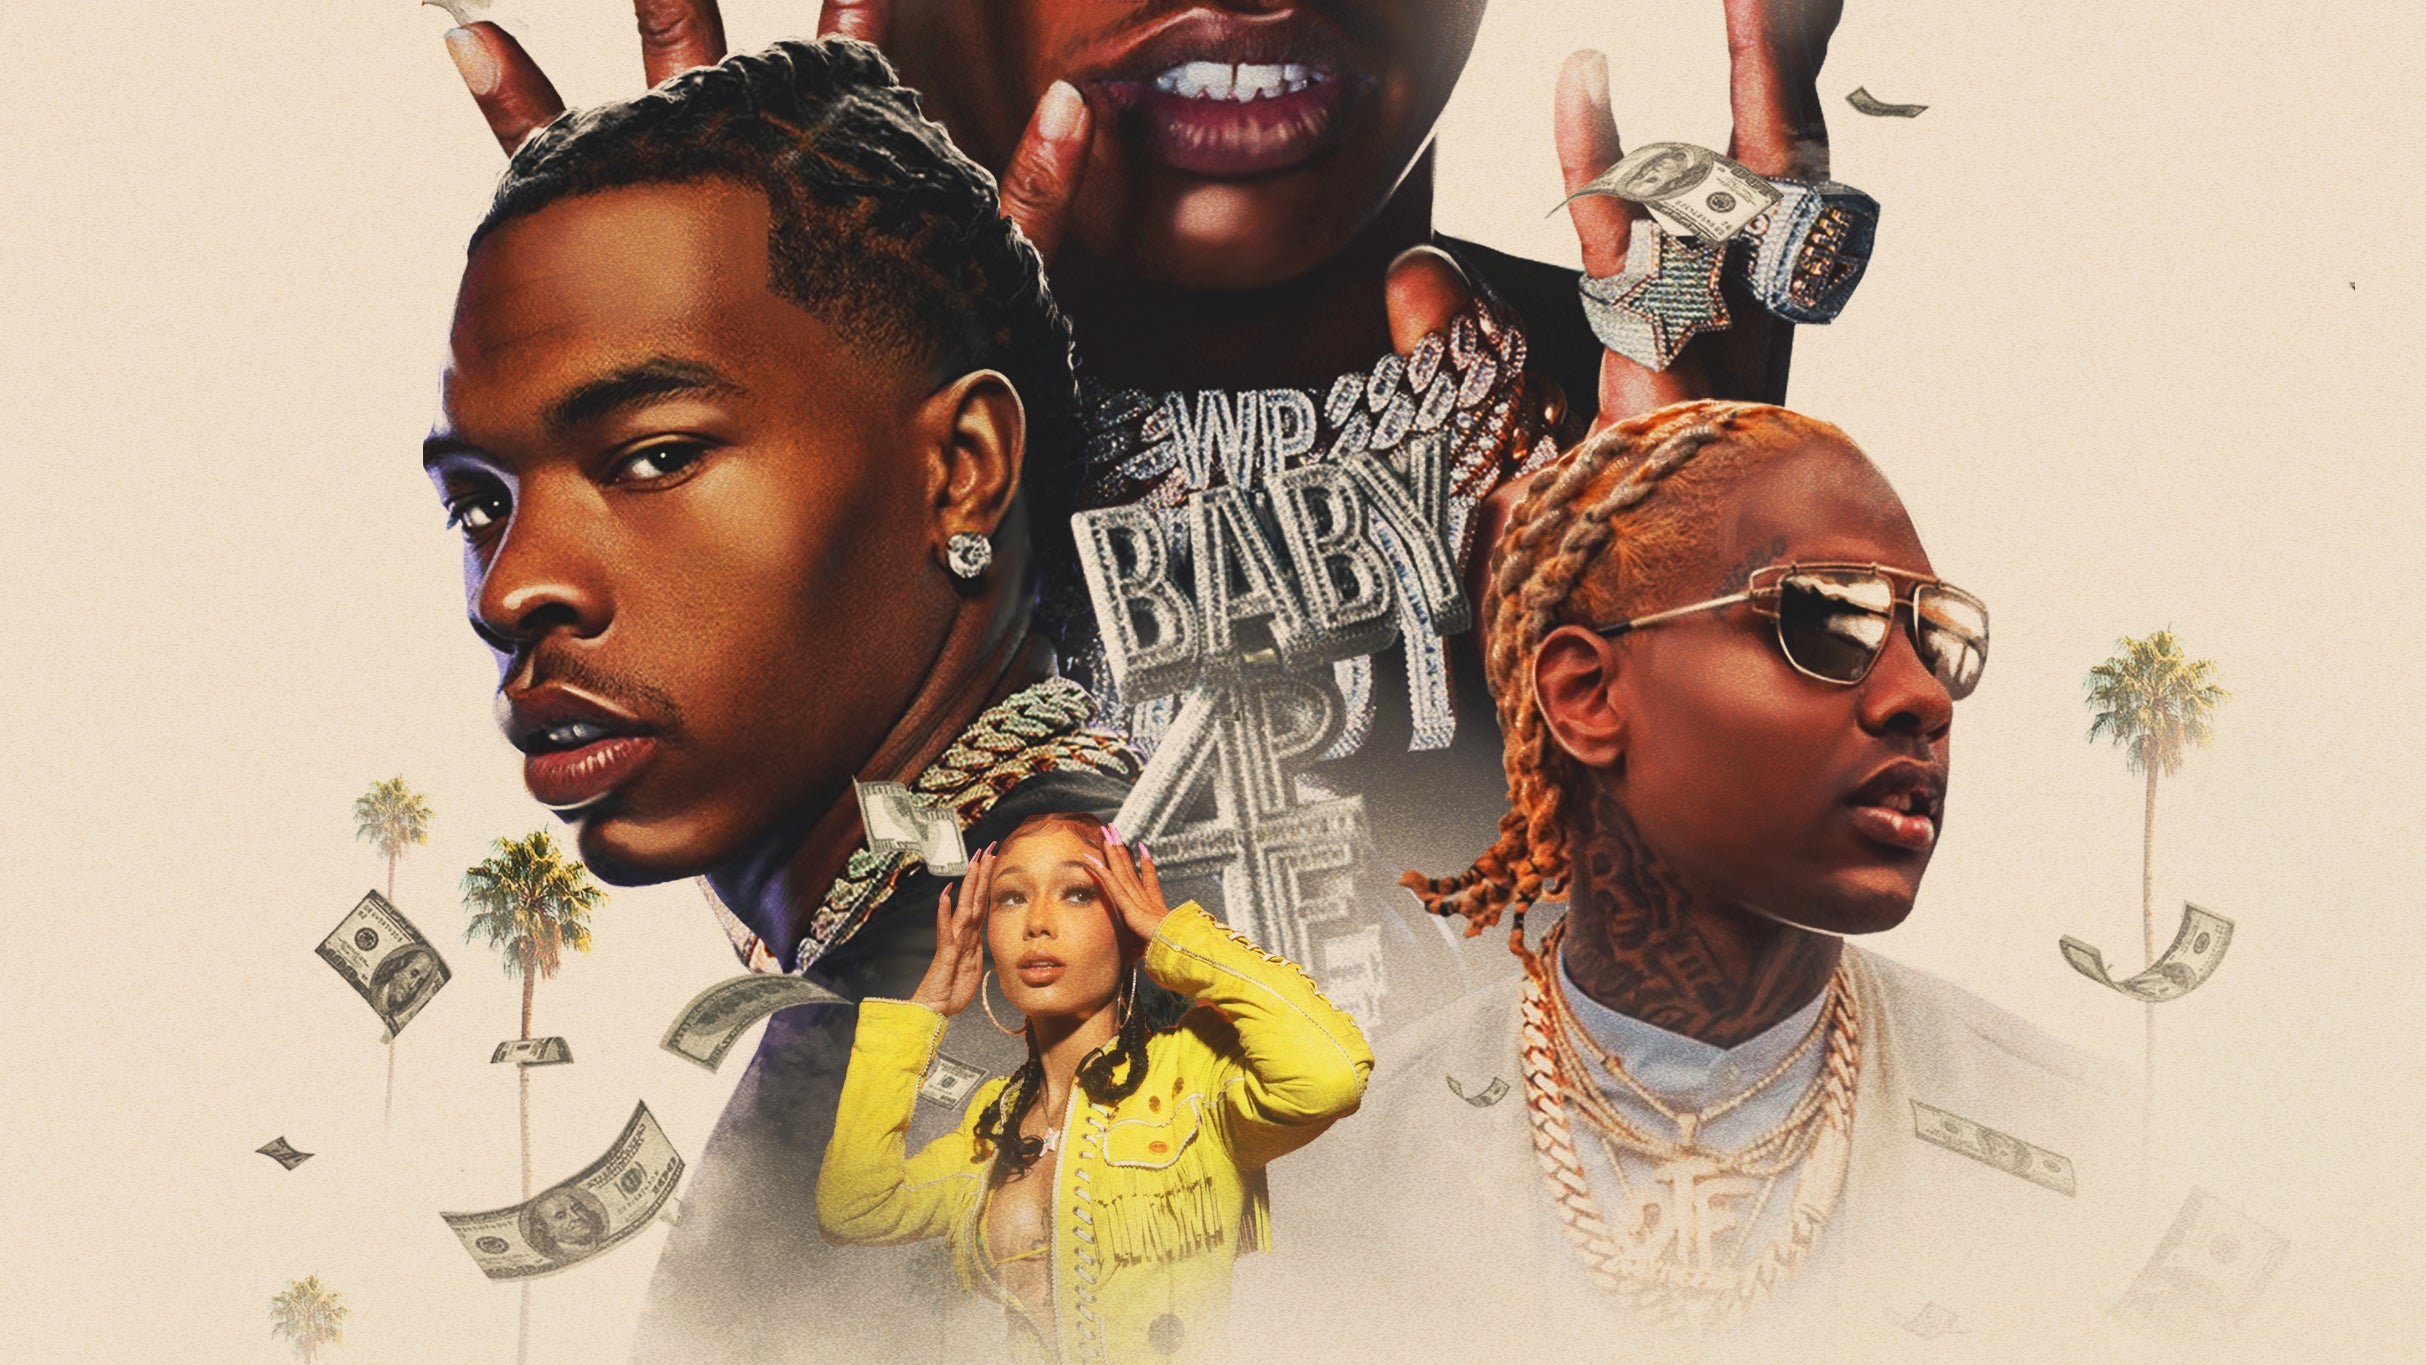 Lil Baby with Lil Durk and Coi Leray